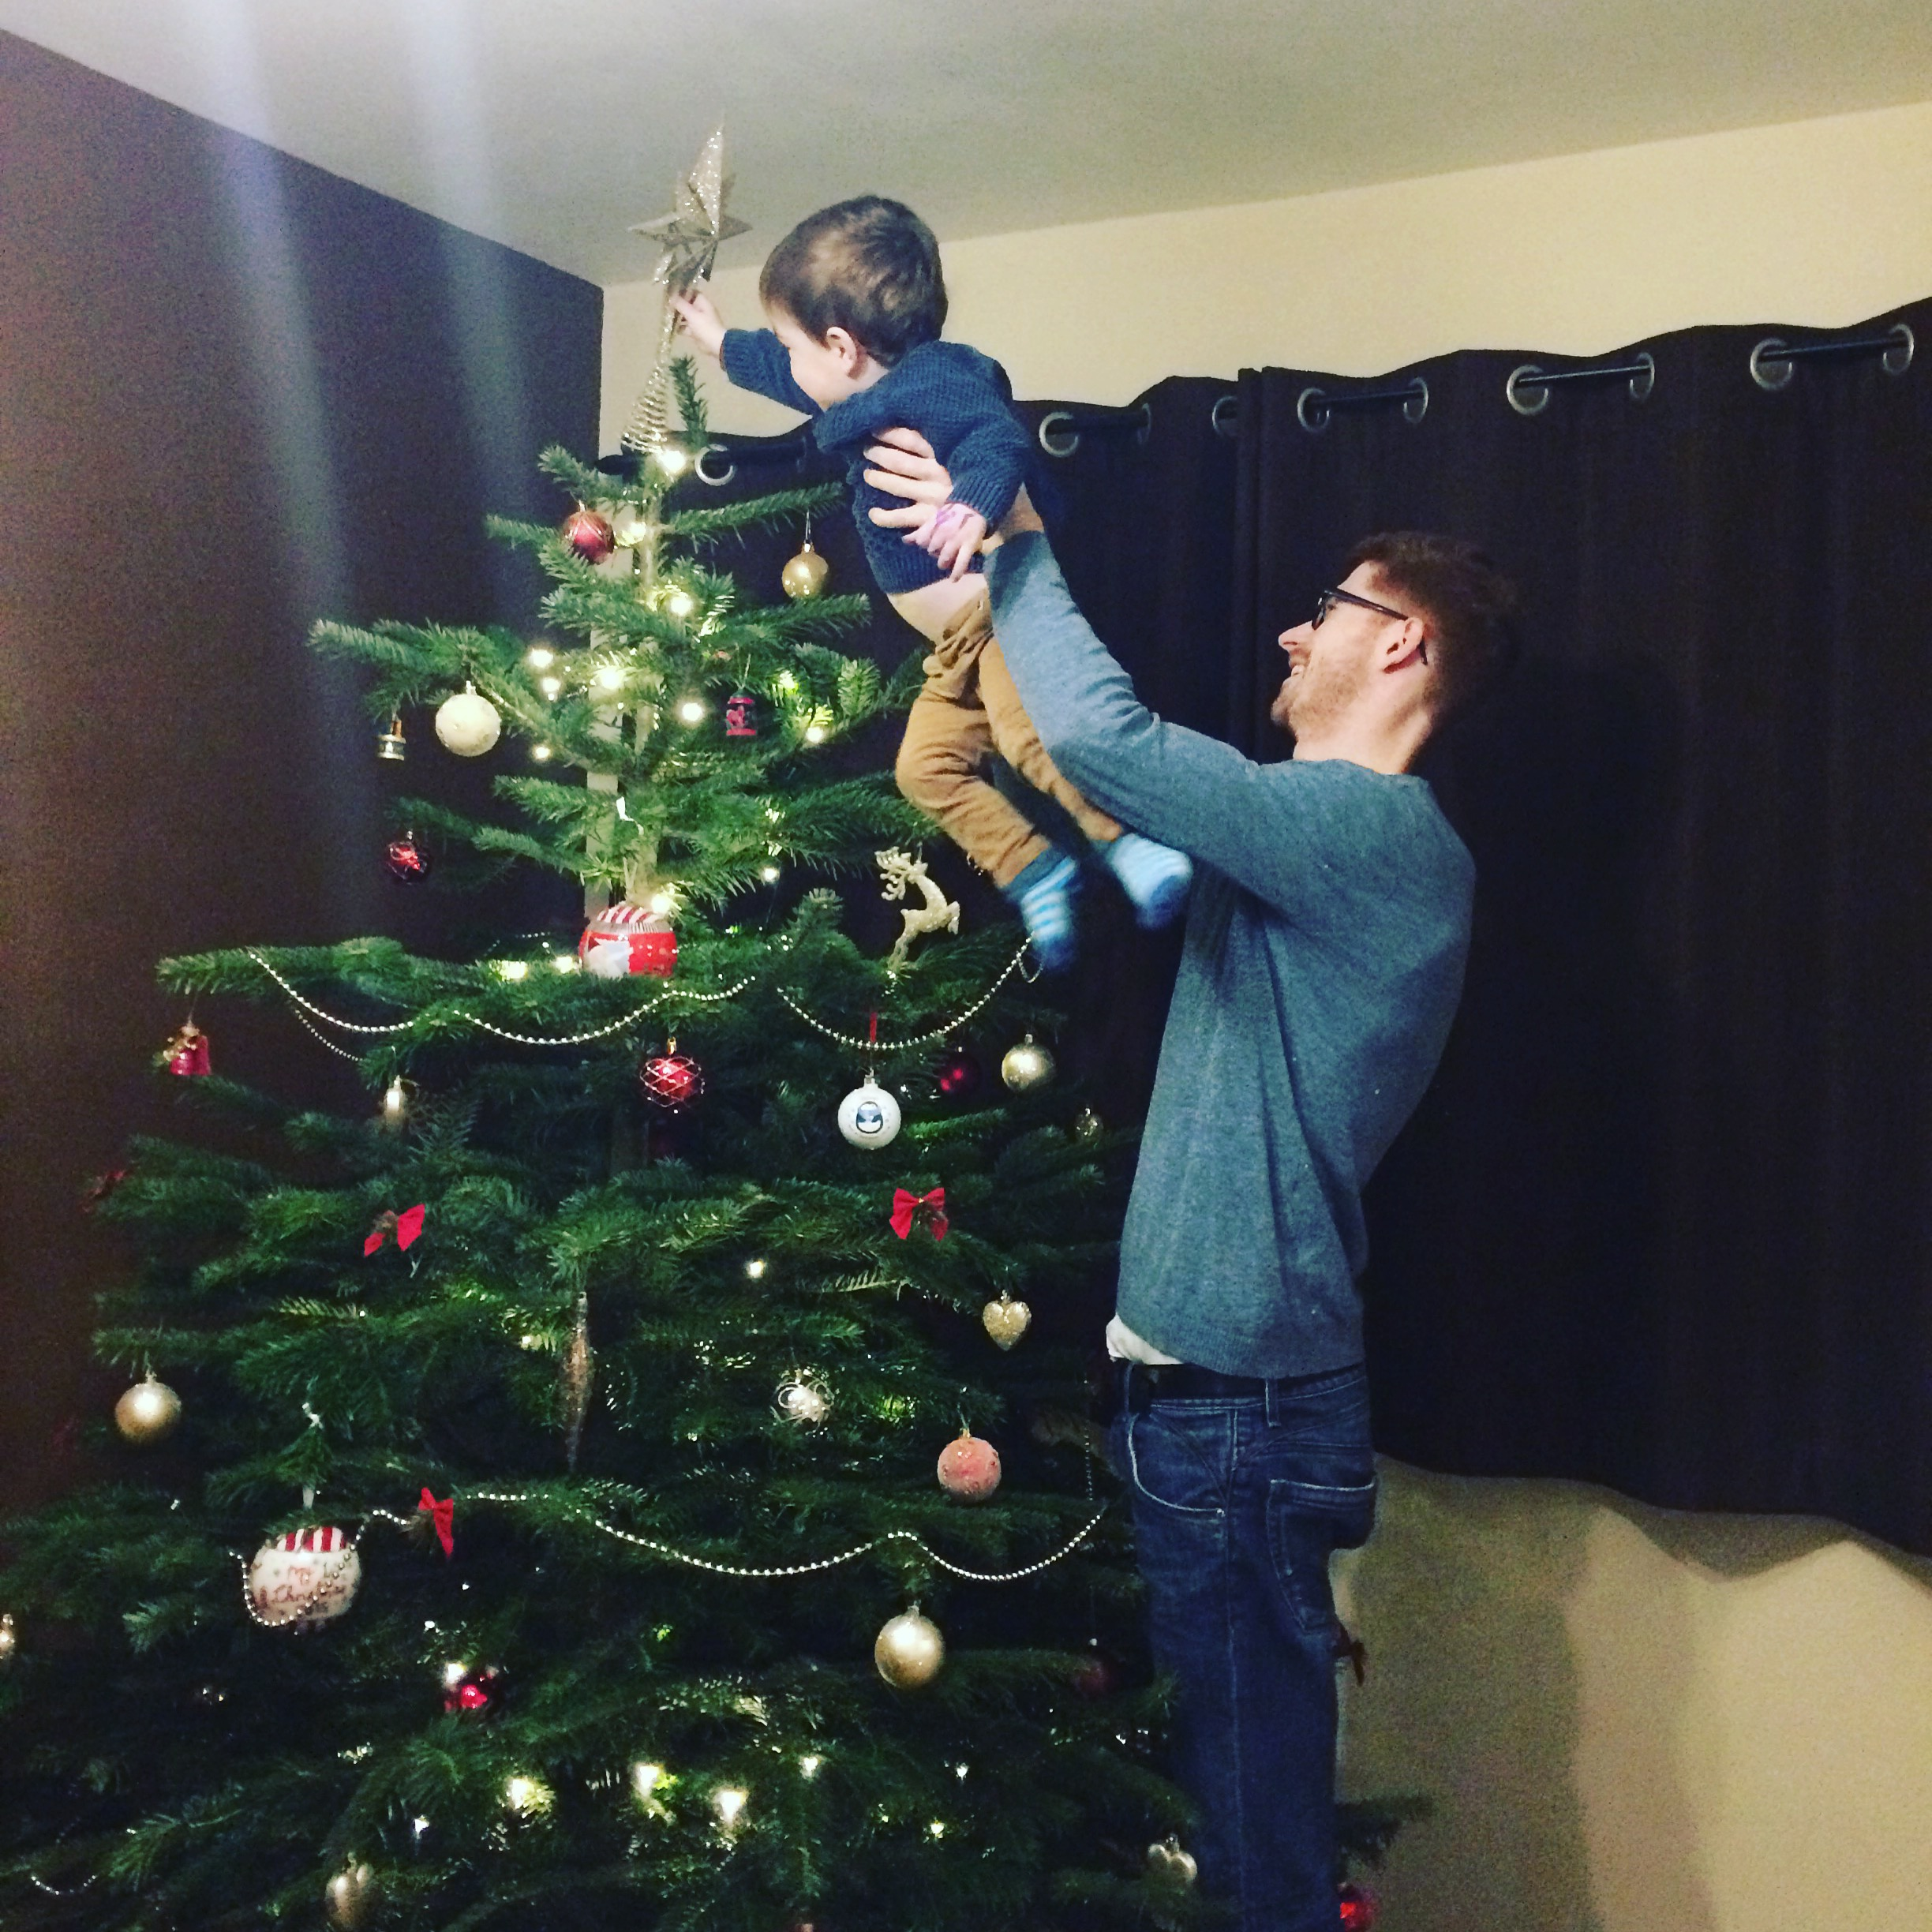 Putting the star on the top of the tree